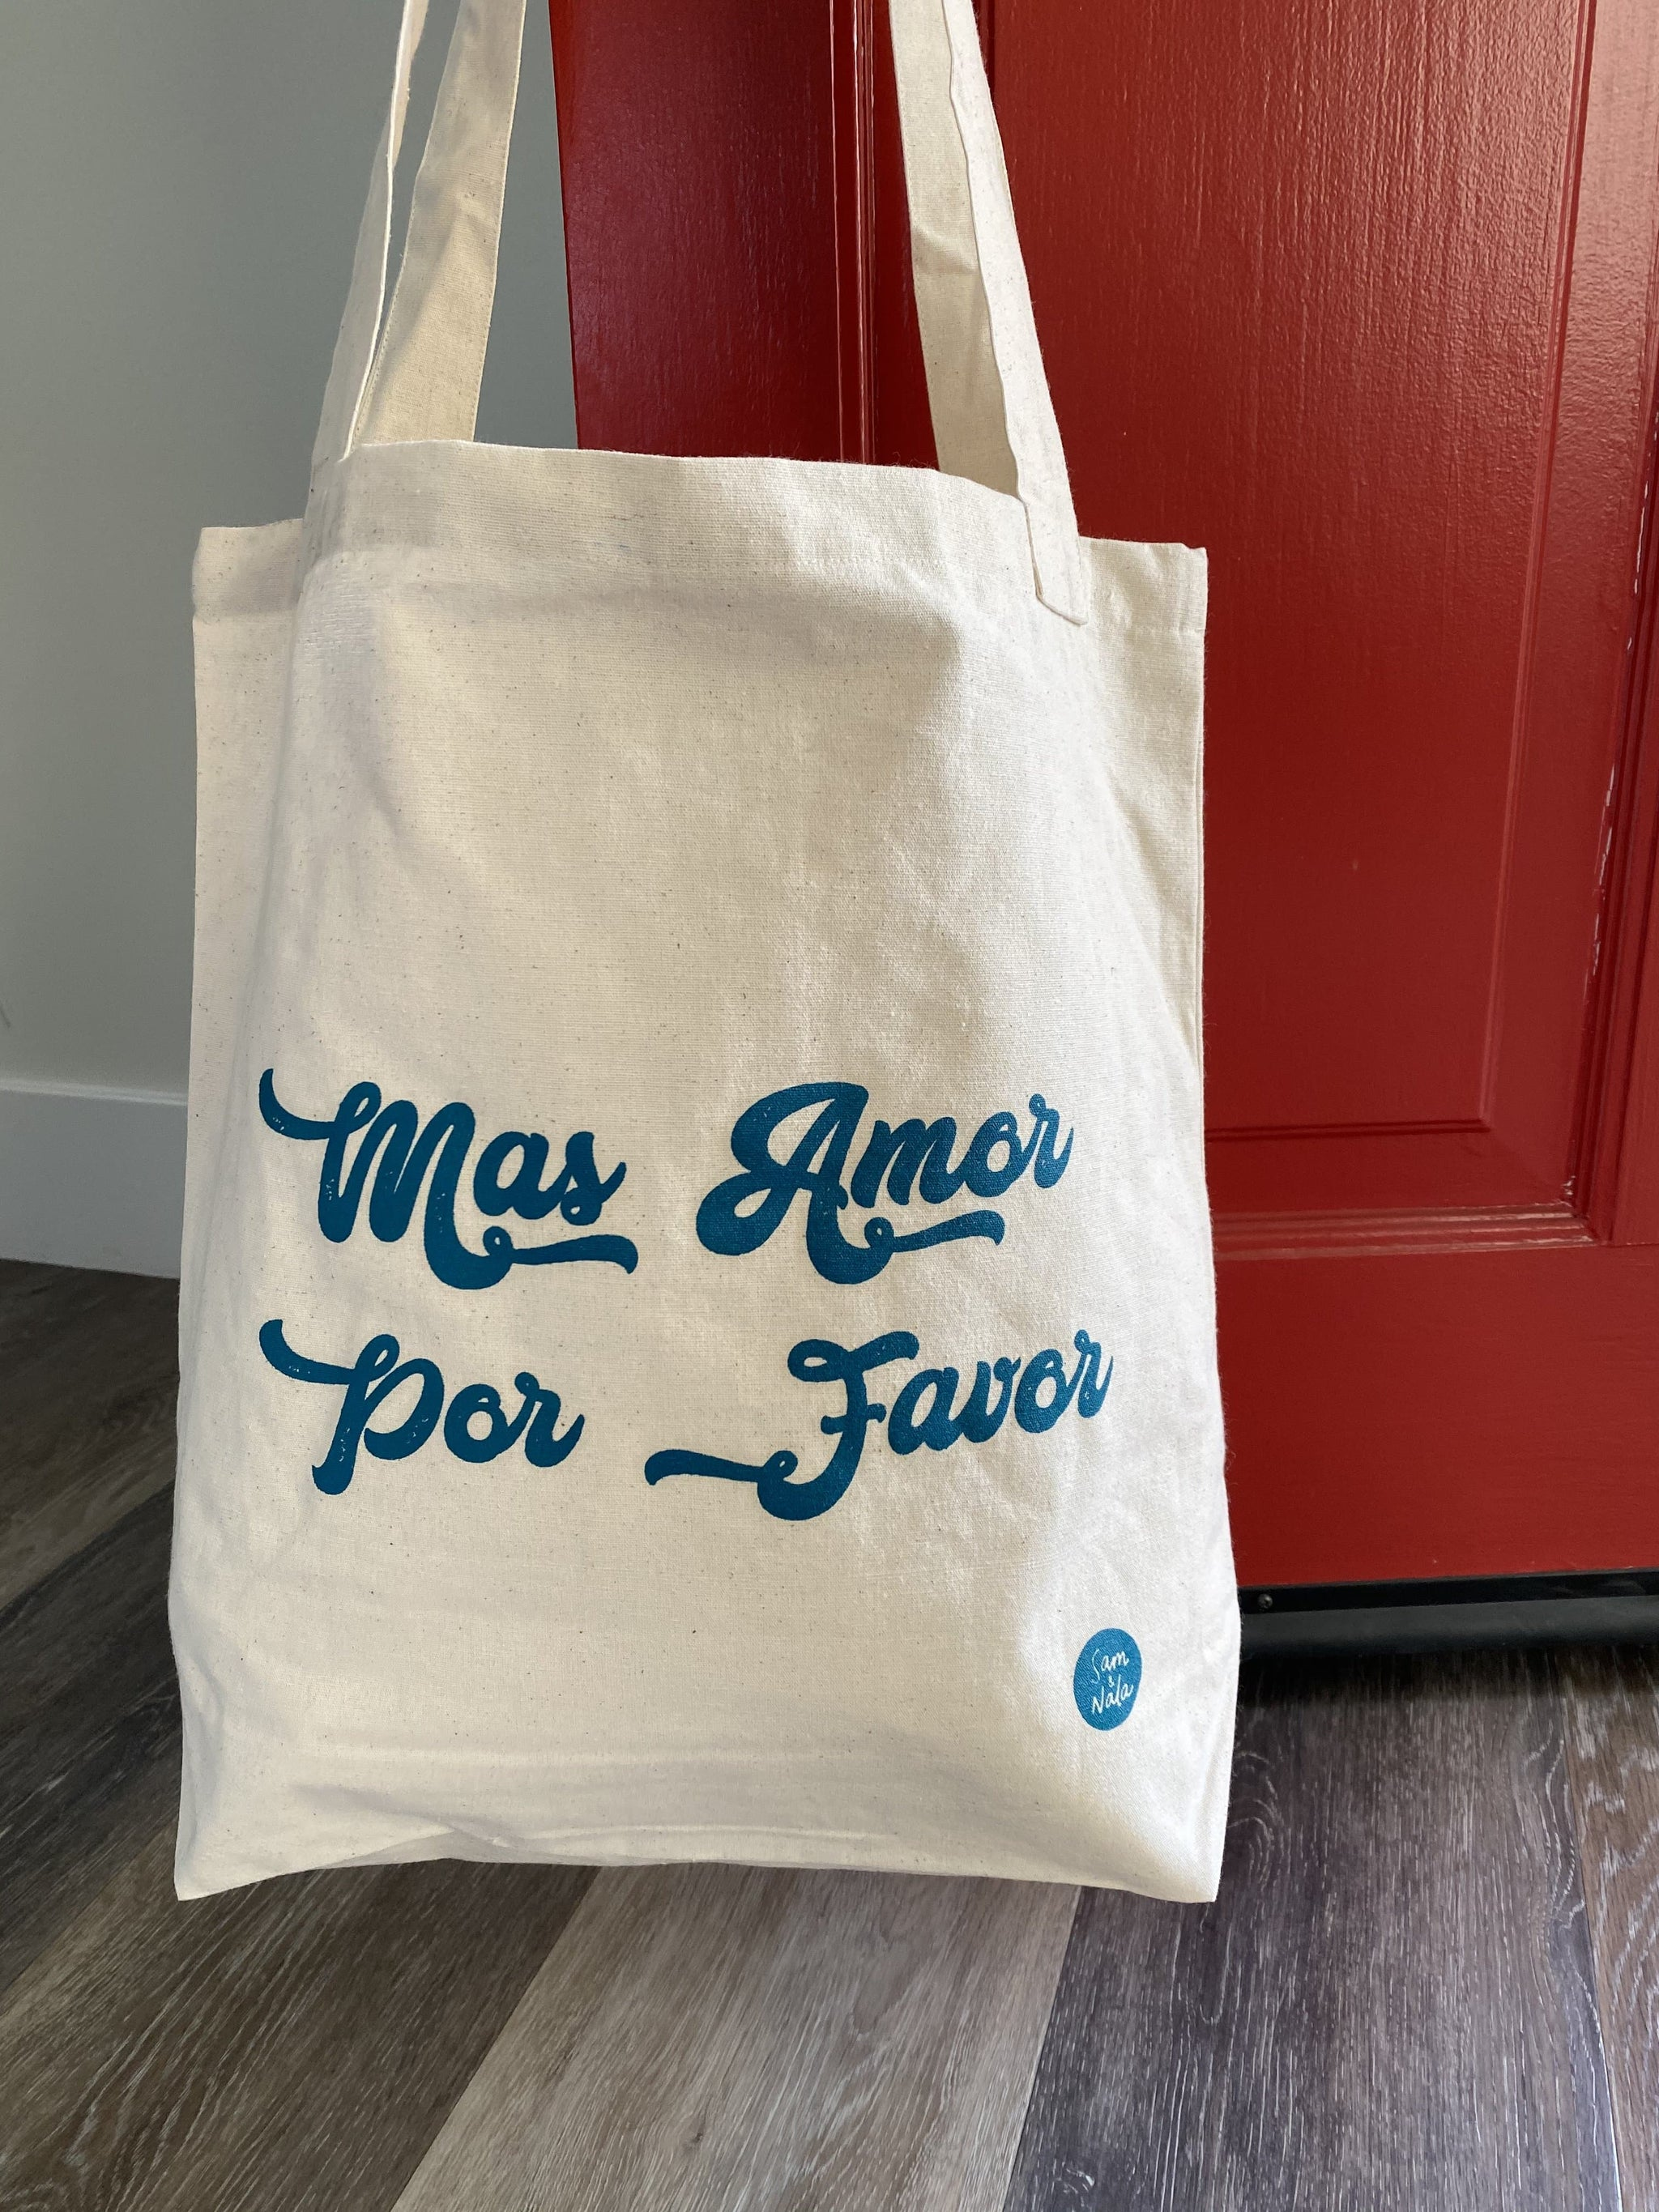 Recycled Canvas Bags - Mas Amor Por Favor